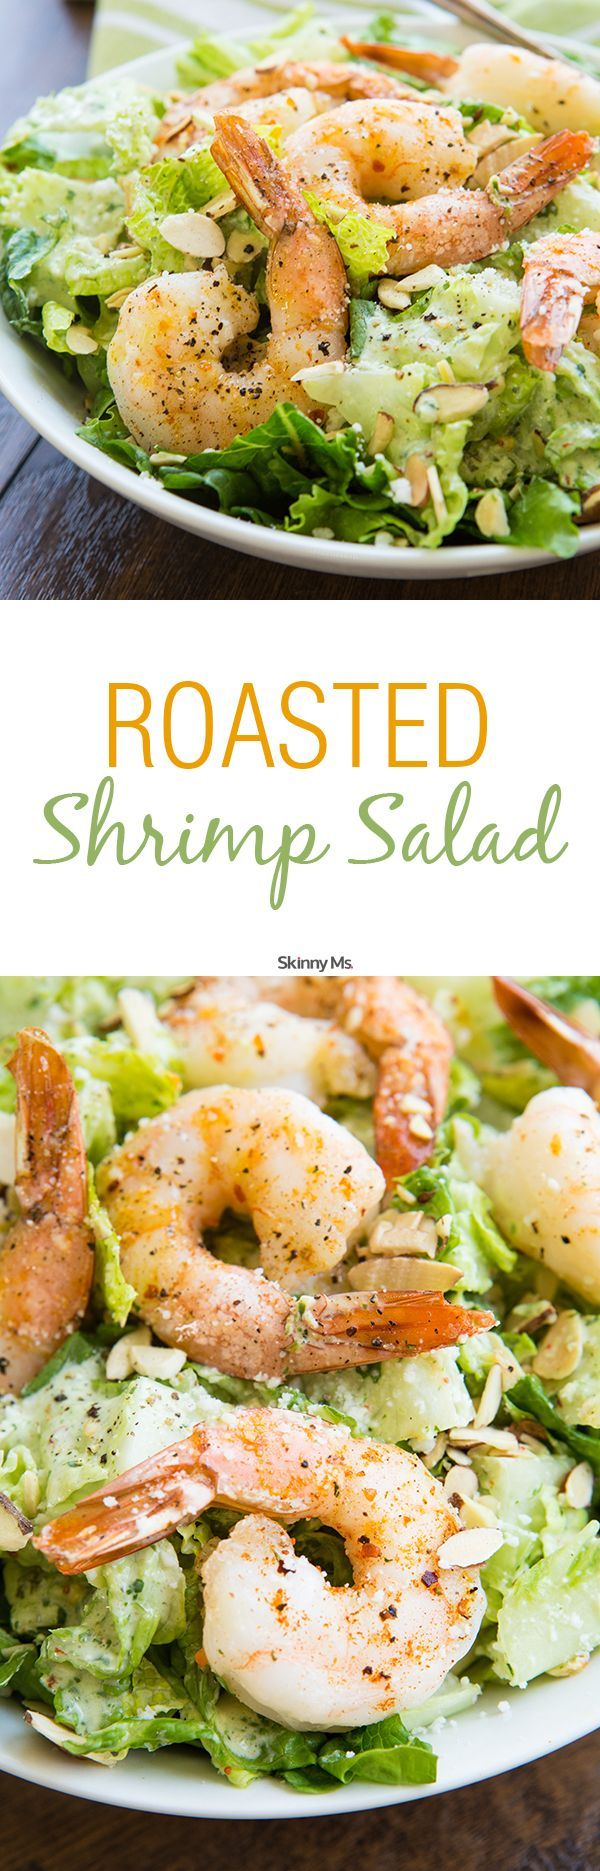 Roasted Shrimp Salad w/Buttermilk Cilantro Dressing. This salad is features lean protein and homemade clean eating dressing that is perfect for lunch or a light dinner.